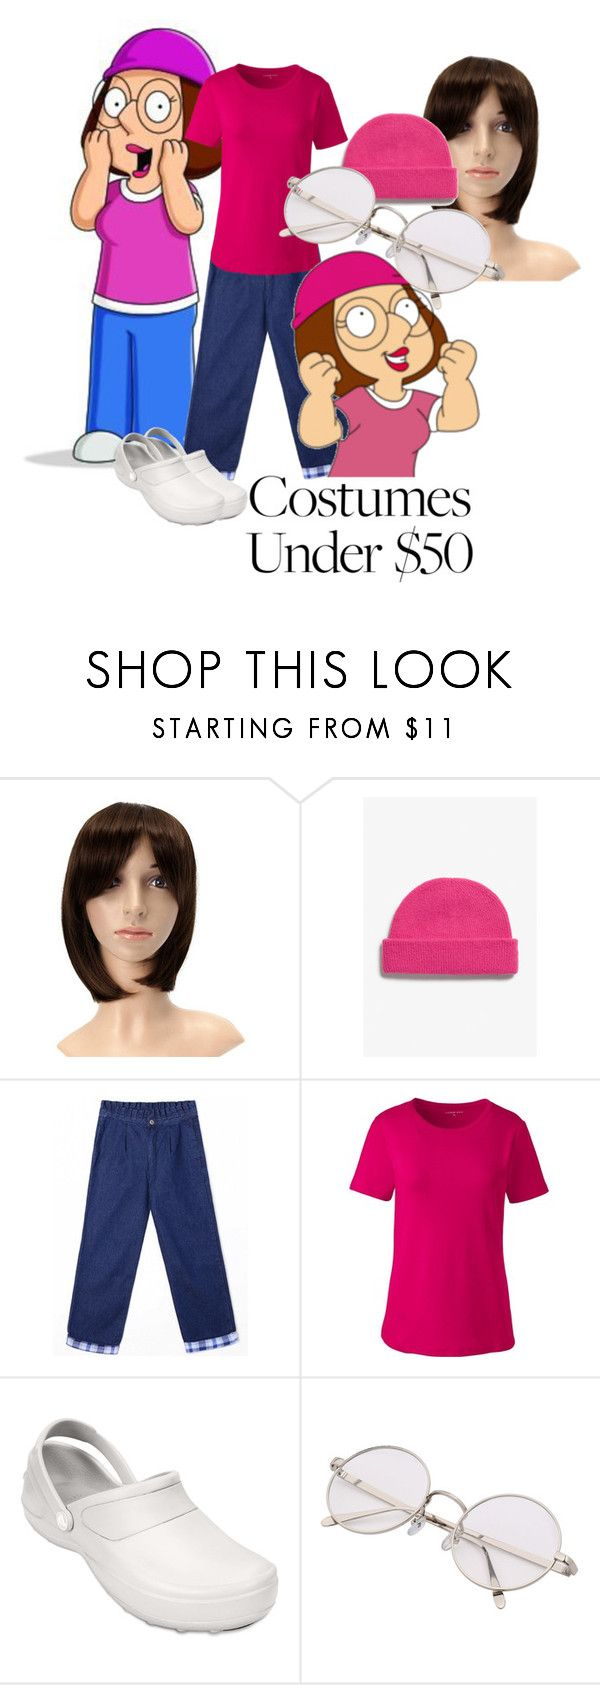 """""""Meg Griffin, Family Guy"""" by maria-kuroshchepova ❤ liked on Polyvore featuring Monki, Lands' End, Crocs and halloweencostume"""